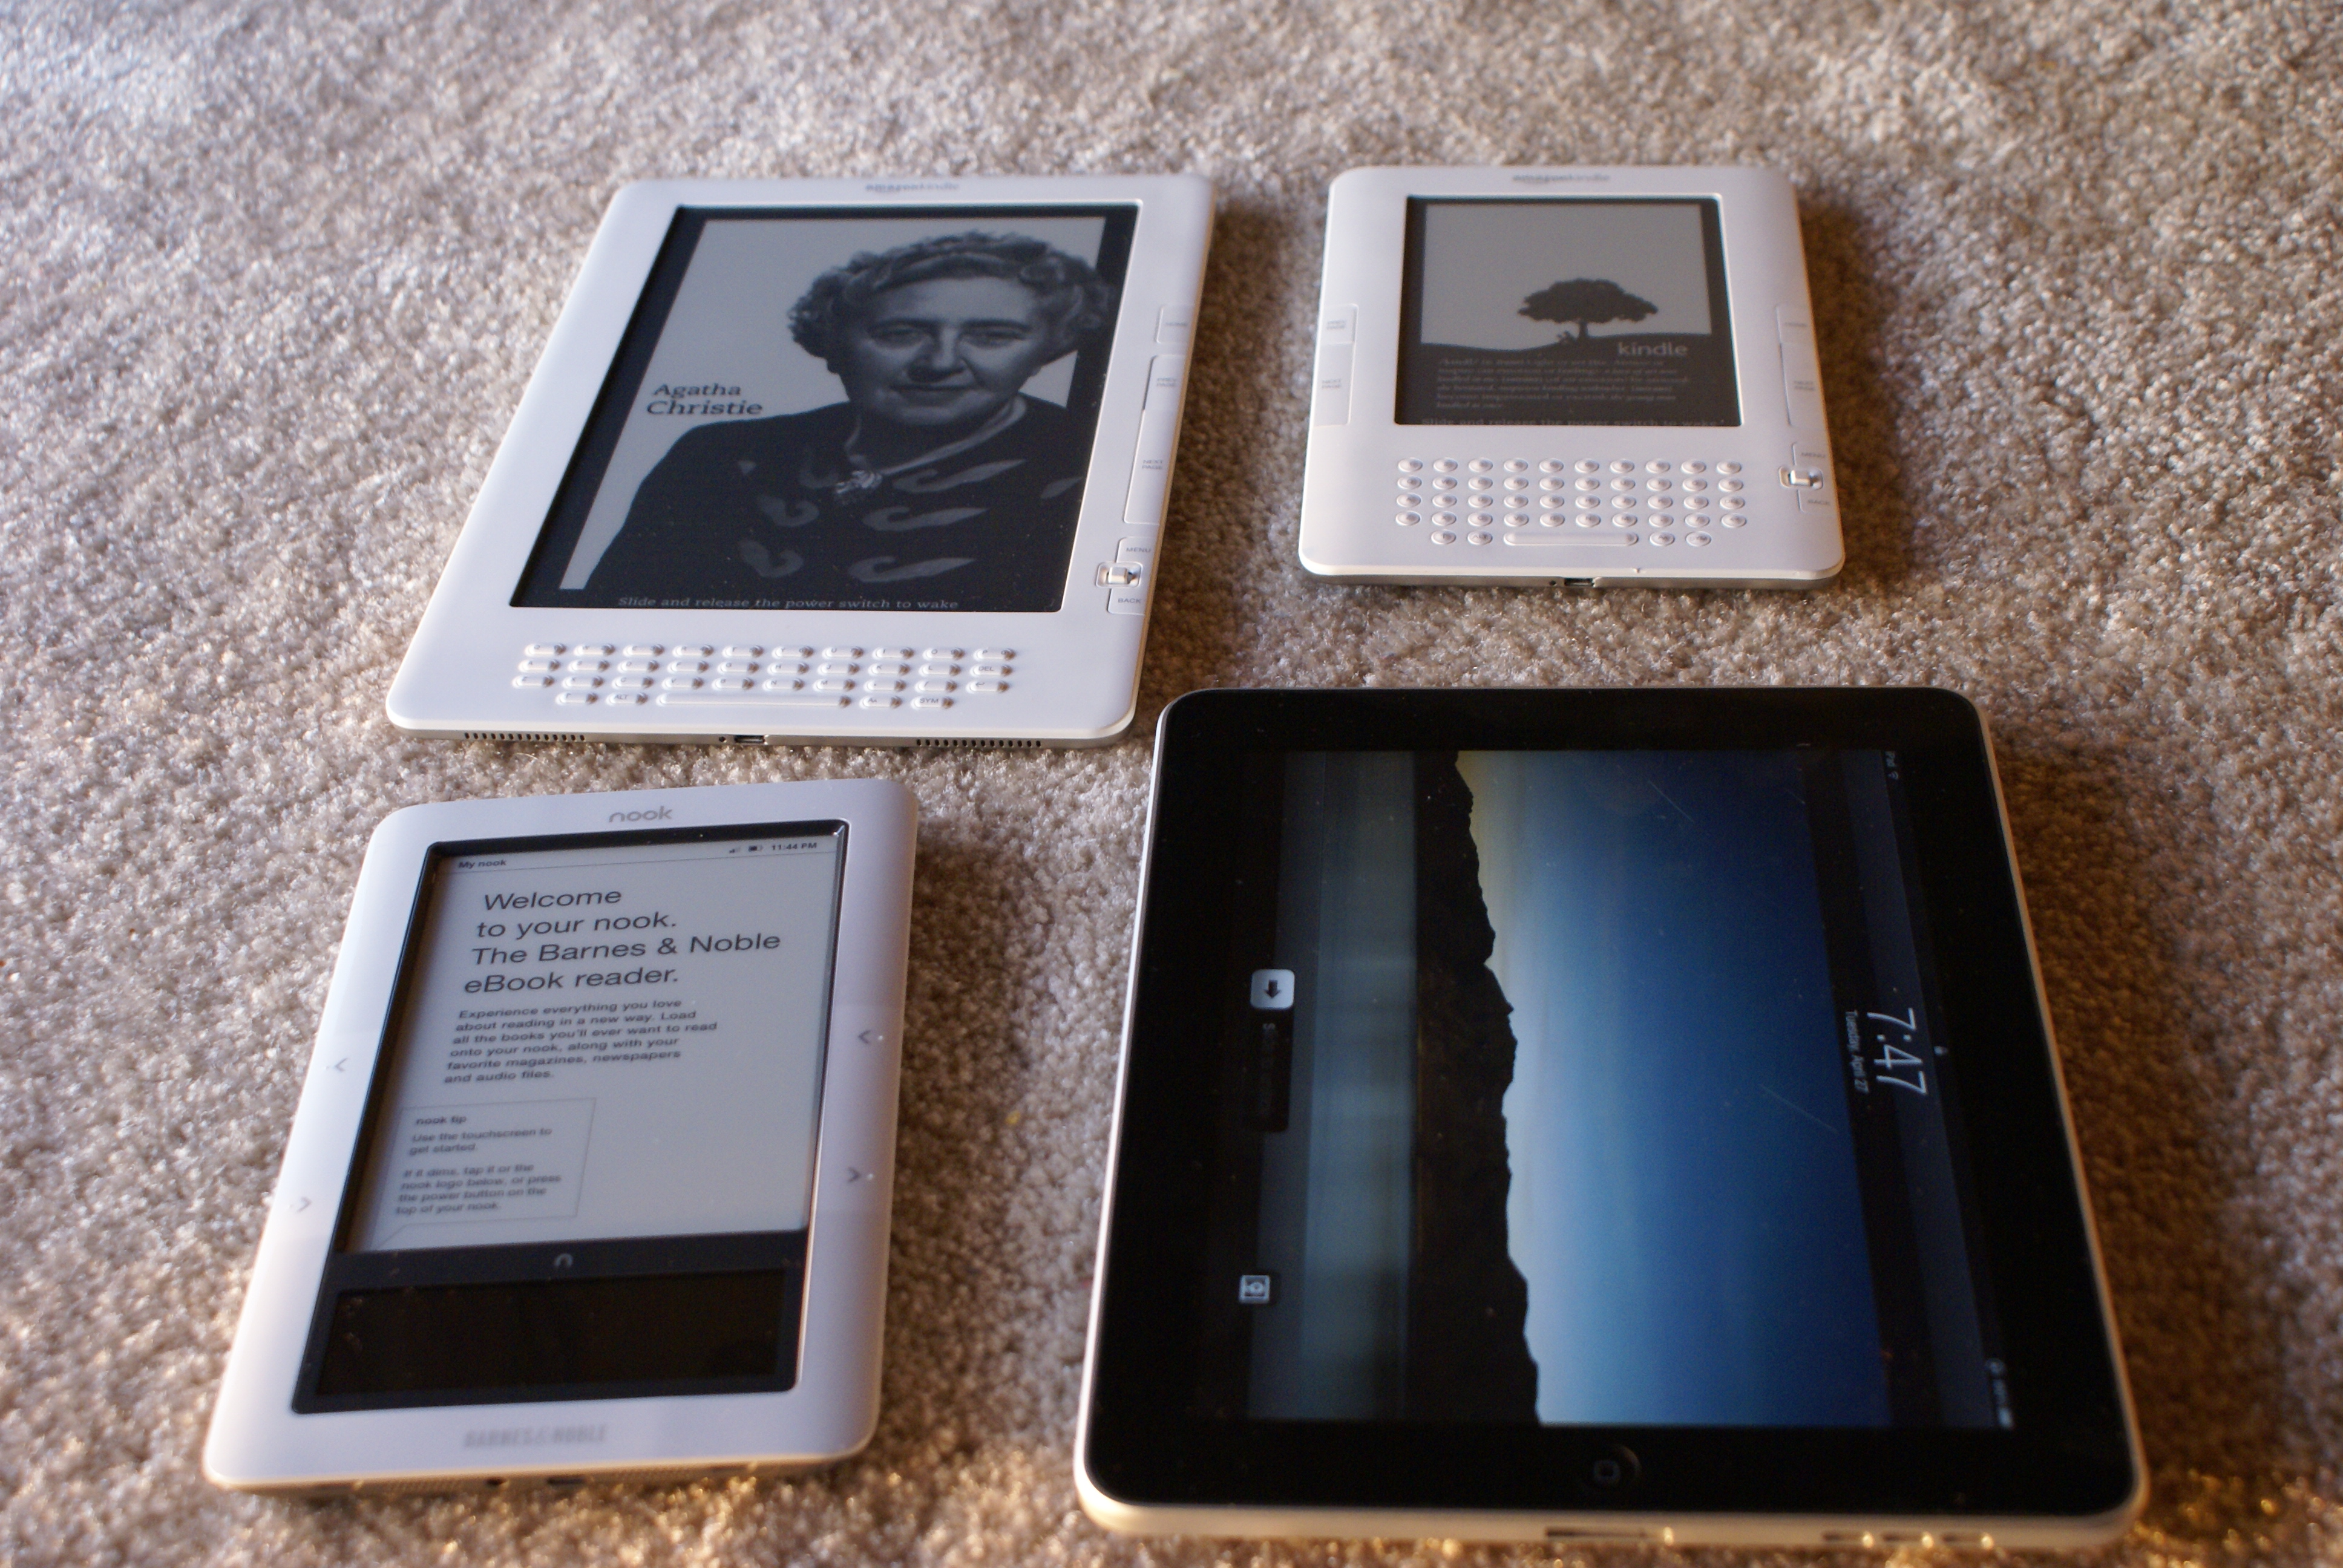 Curiosity About Nook And Kindle